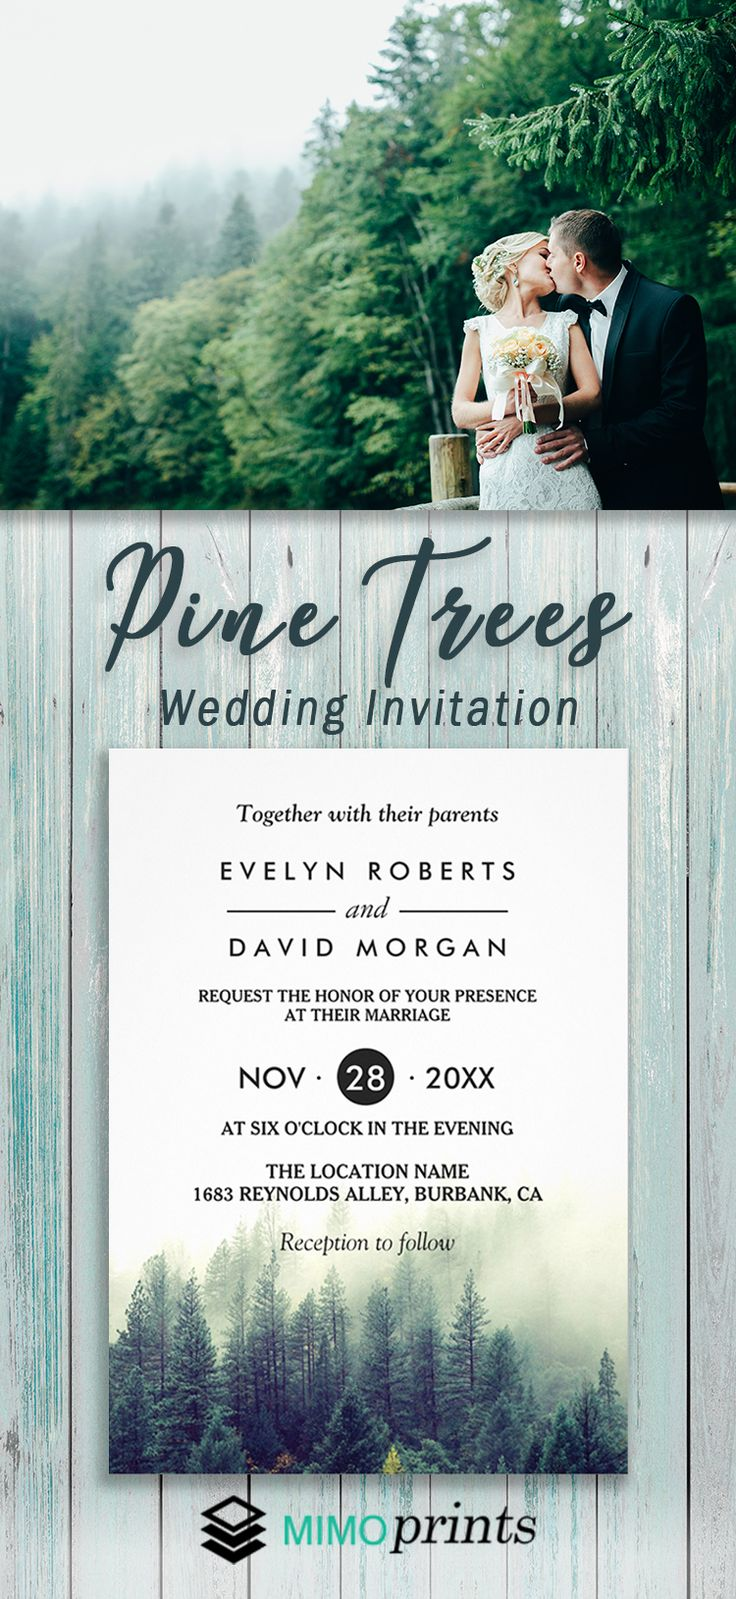 free wedding invitation templates country theme%0A This pretty and neutral wedding invitation gives a cozy style